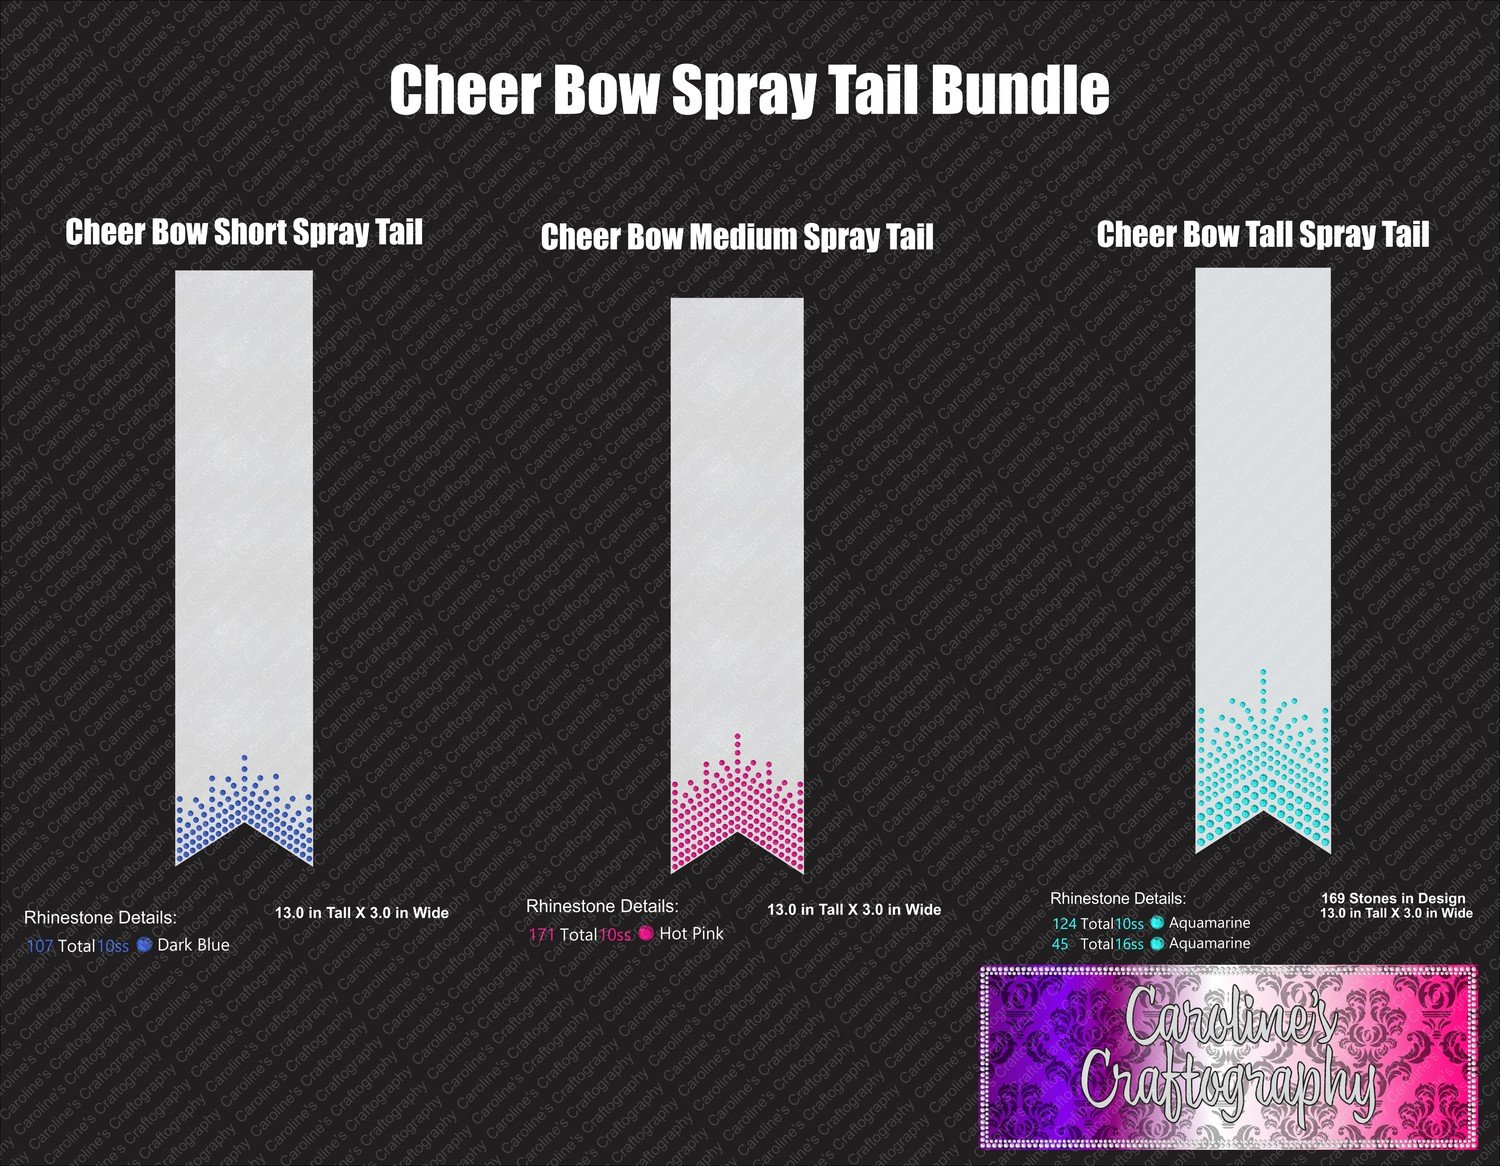 Spray Tail 3in Cheer Bow Stone Bundle